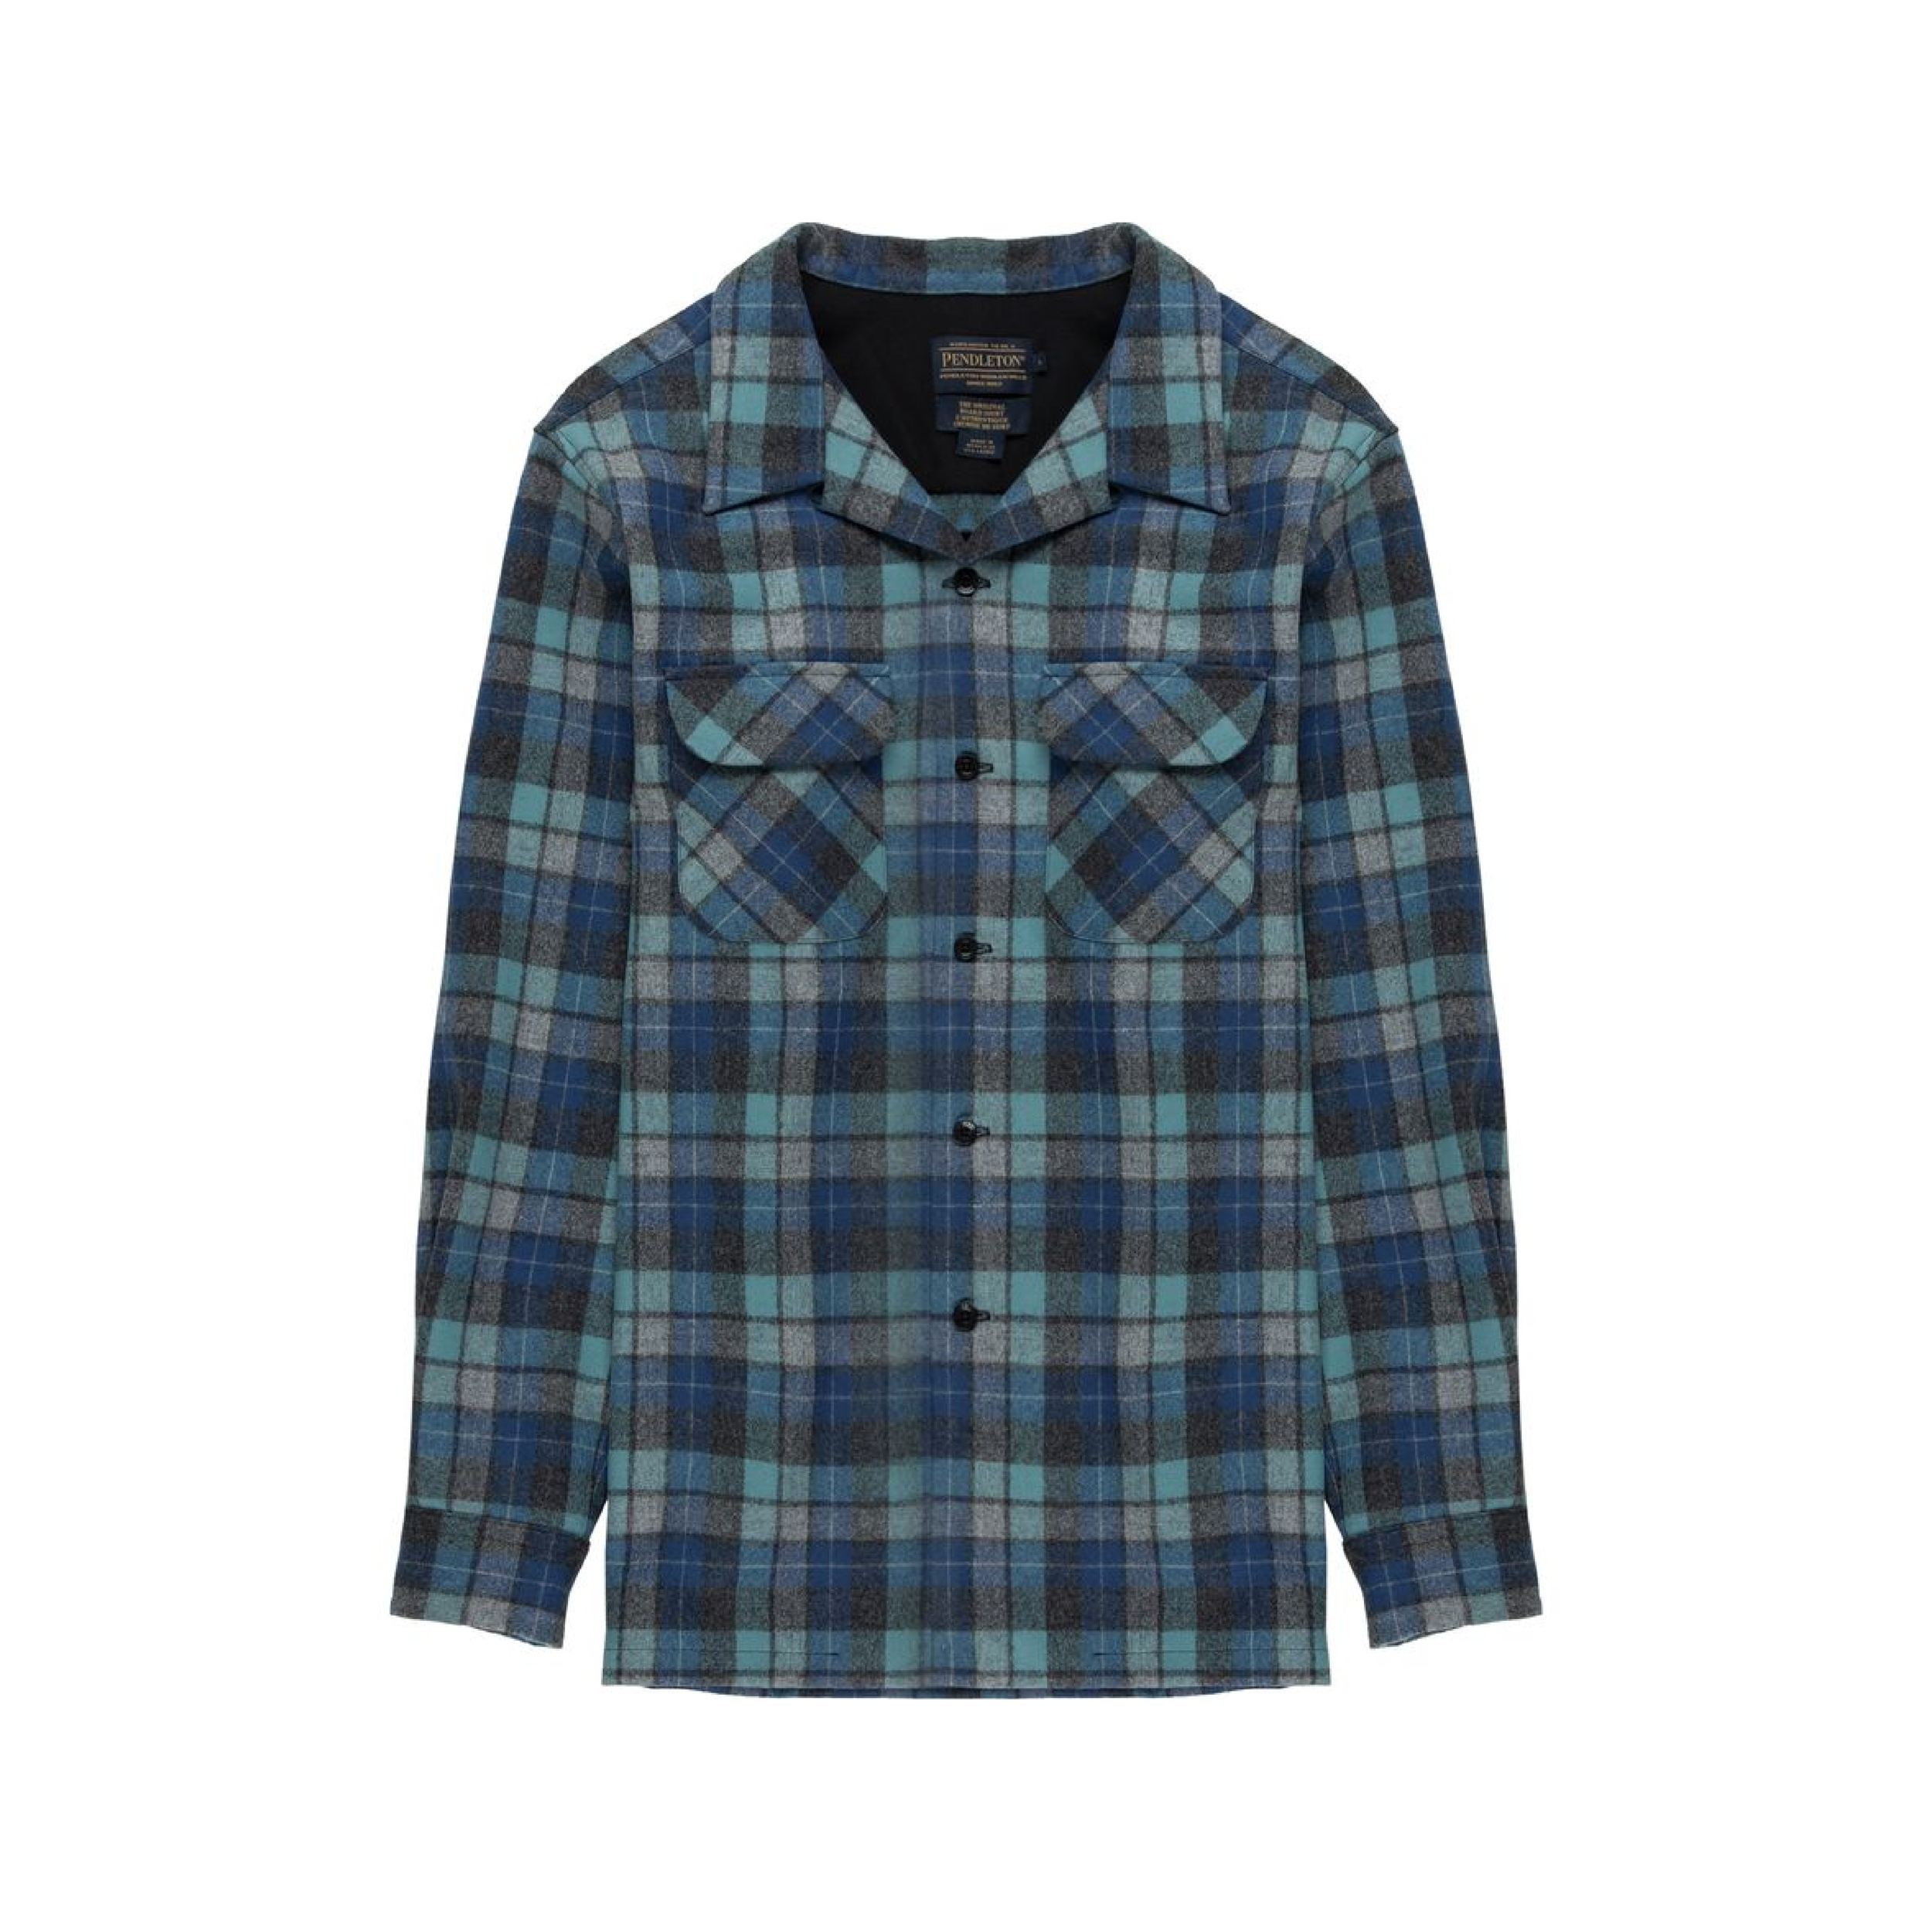 BLUE BOARDSHIRT    By  Pendleton     The perfect shirt to sit by a campfire, take a hike or roll to work in.    SHOP NOW          £95